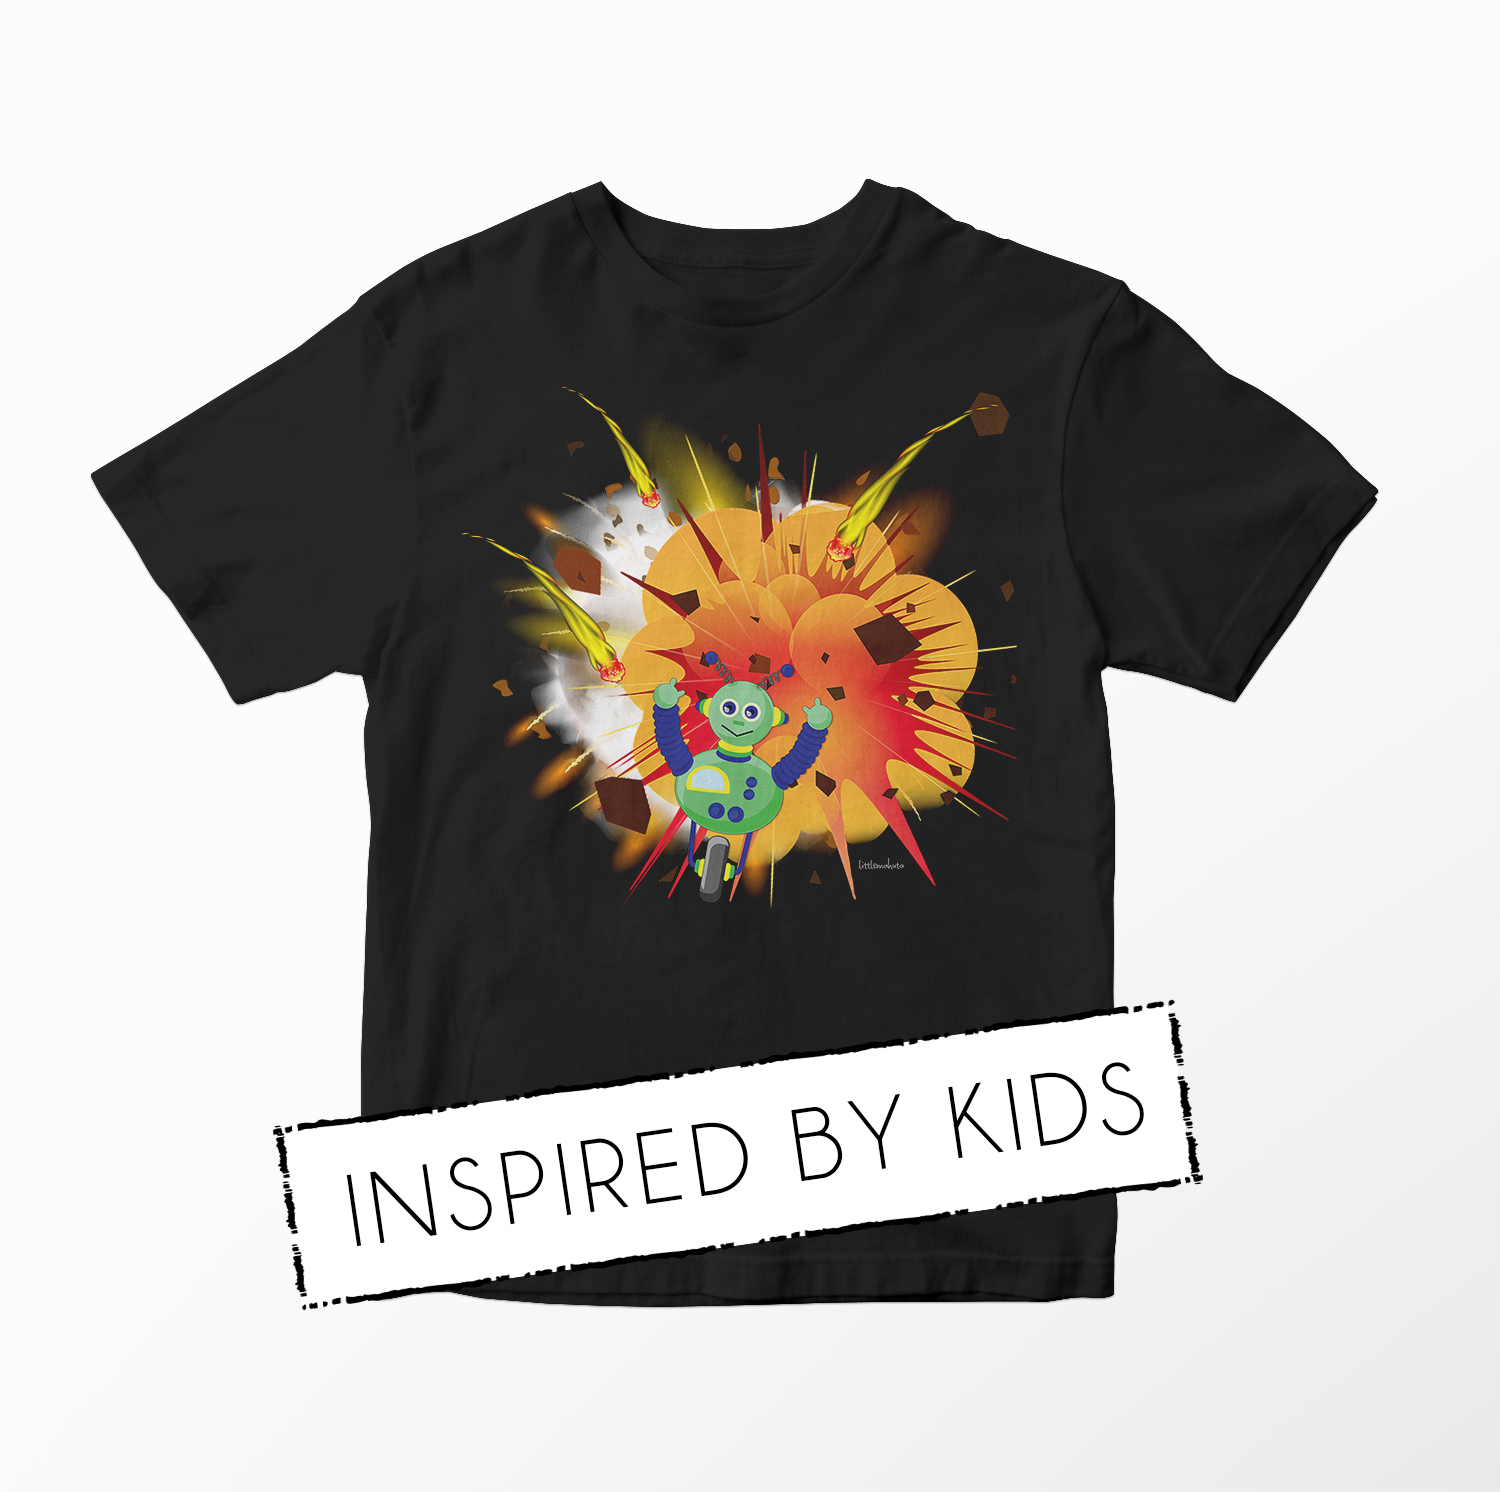 Inspired By Kids - Turbo Robot